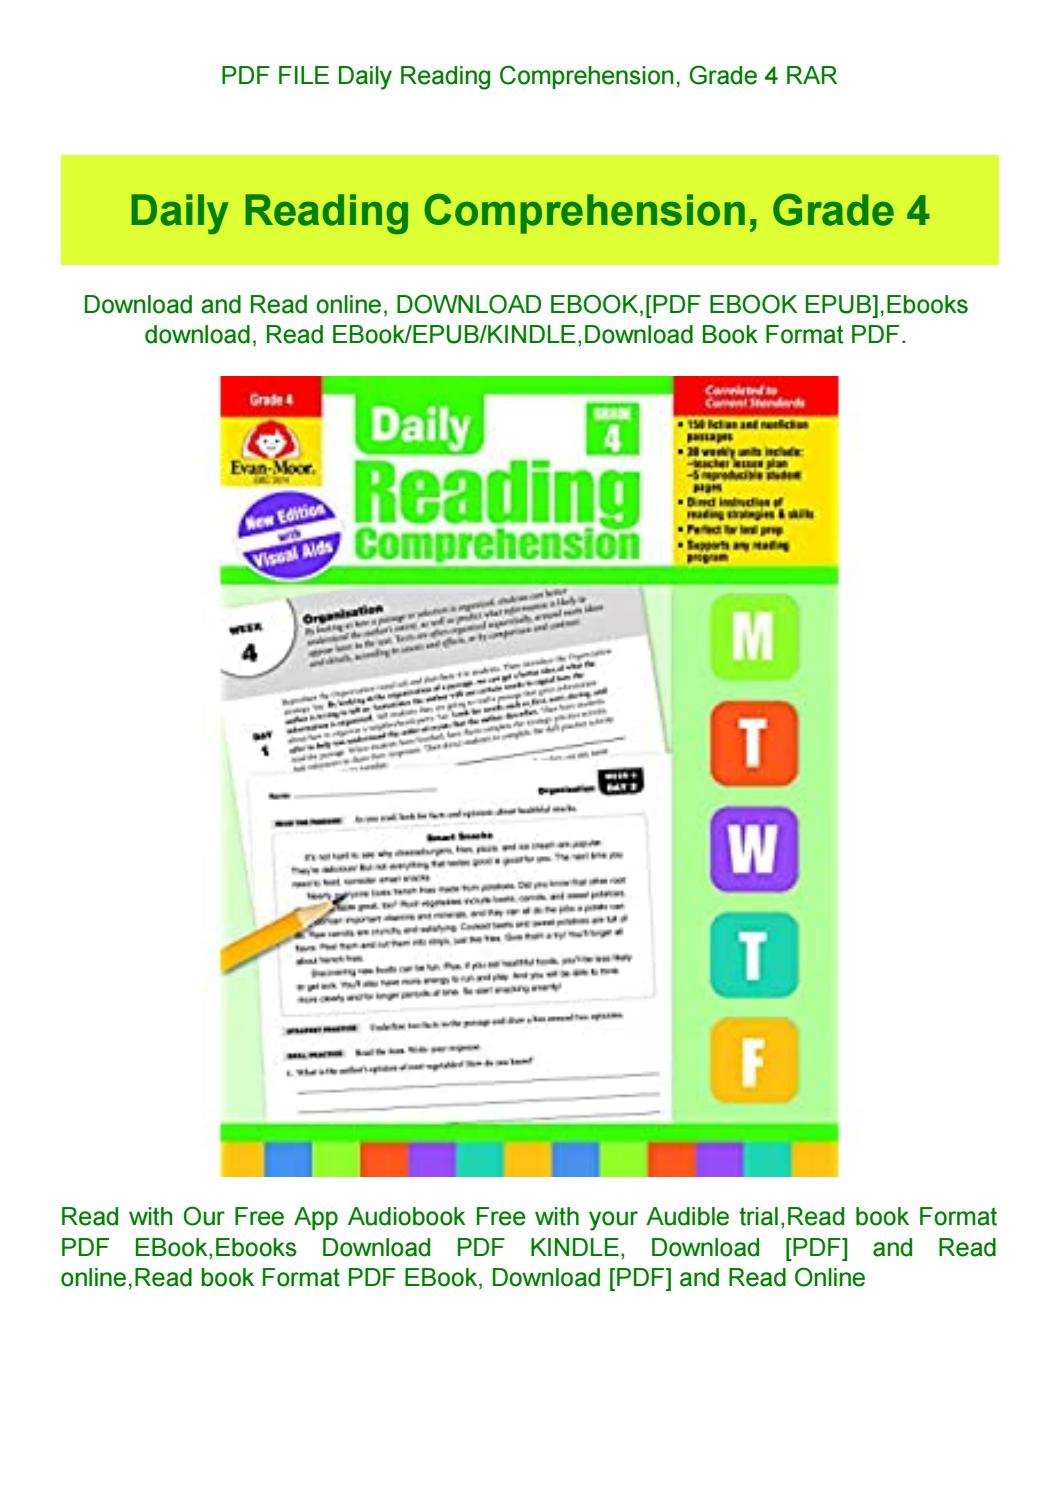 Daily Reading Comprehension Grade 4 Pdf